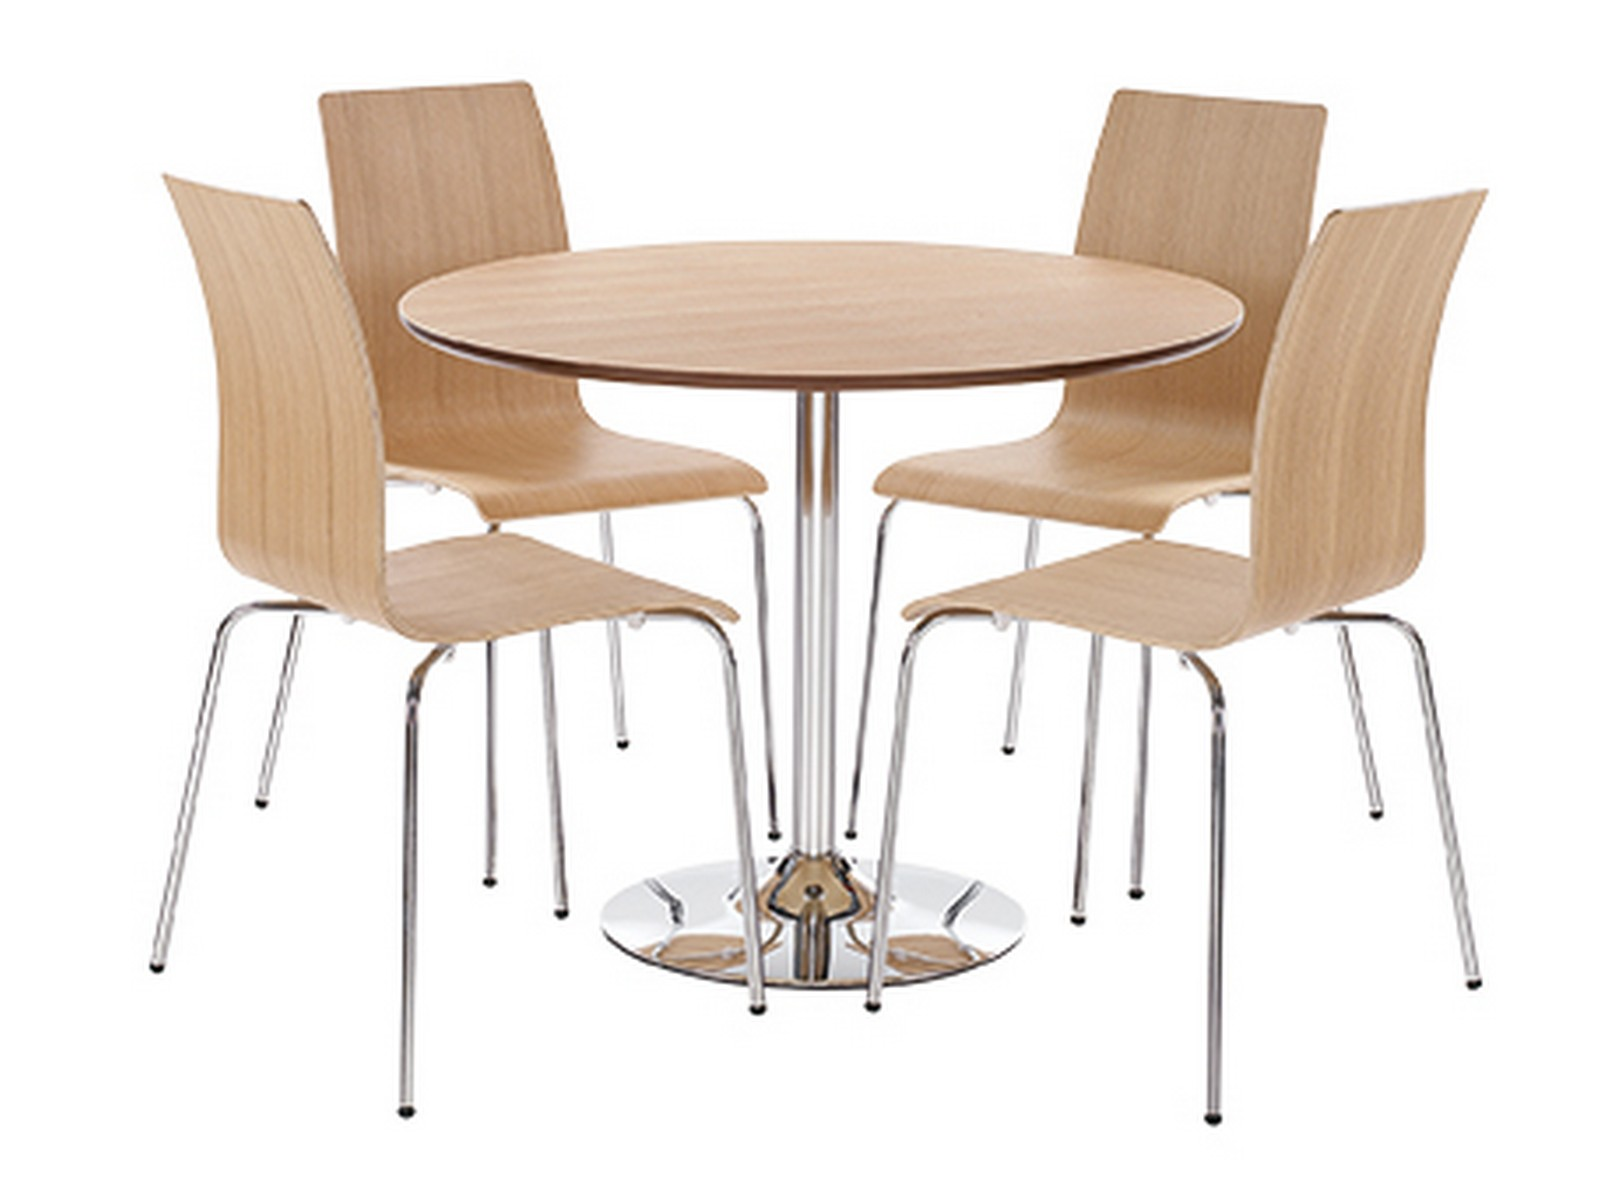 oak dining table and white chairs image